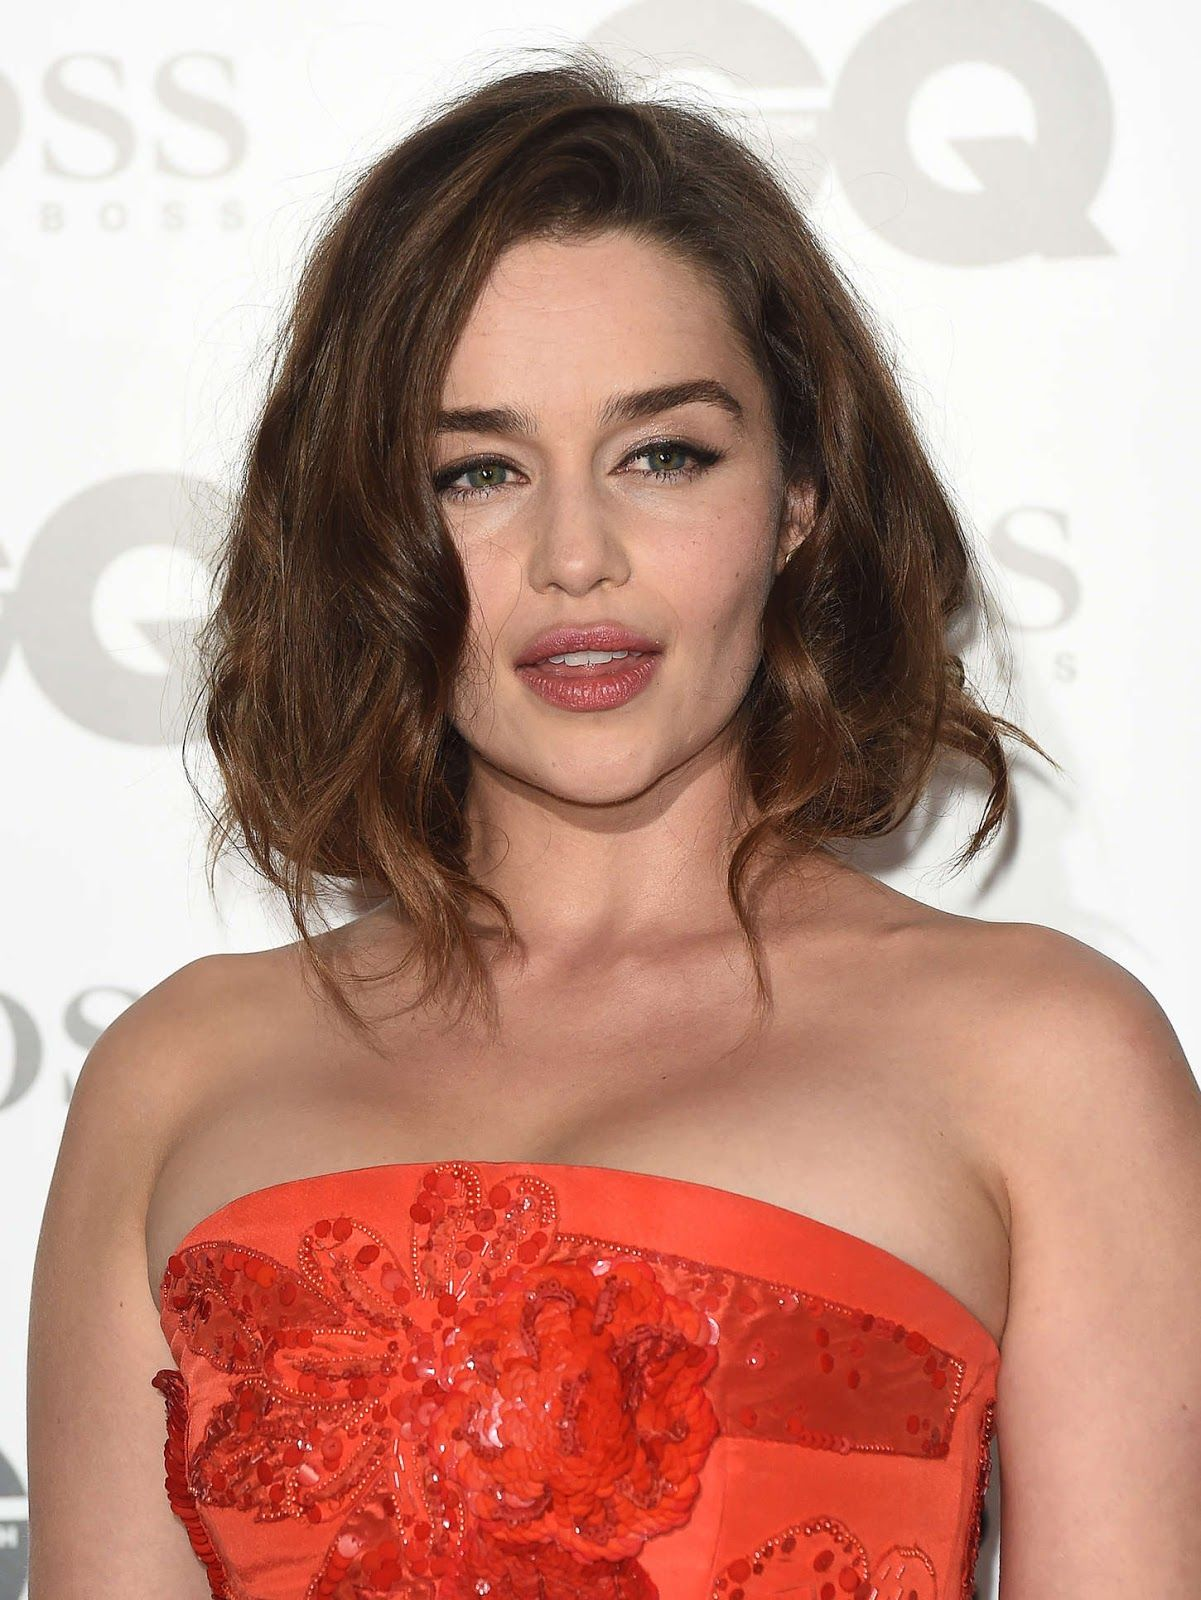 Terminator Genisys Actress Emilia Clarke Full HD Images and 1201x1600